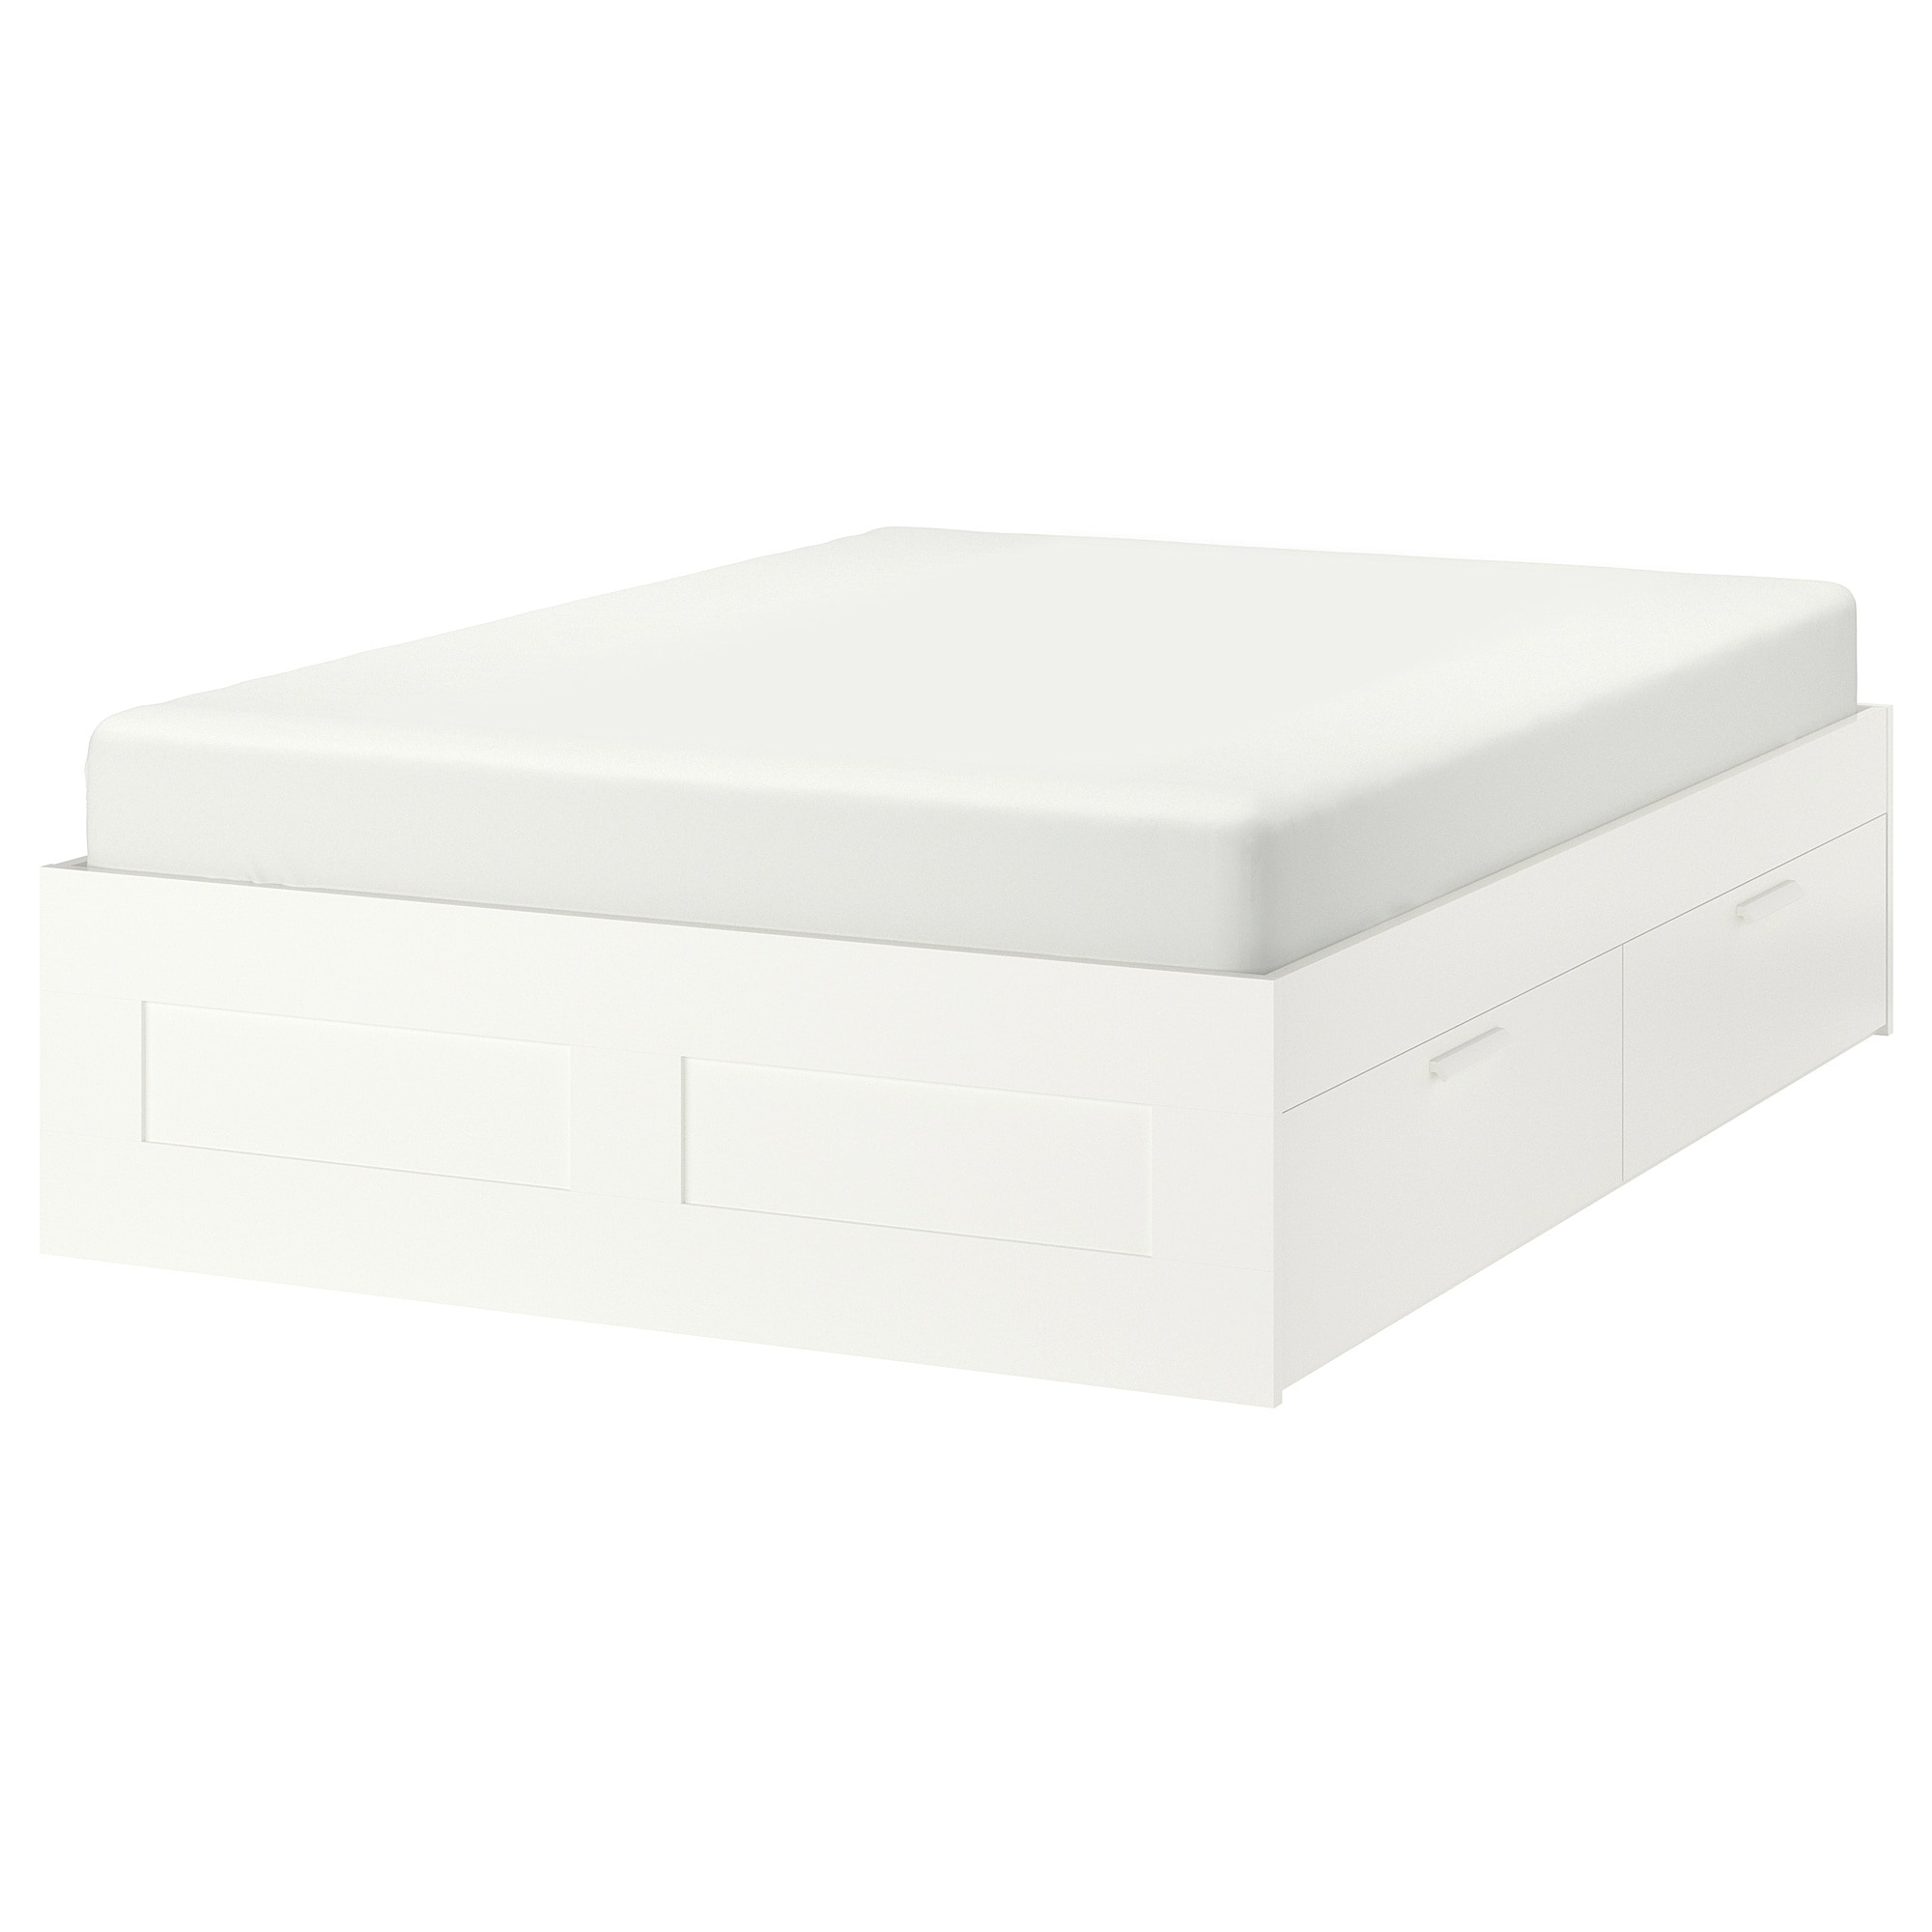 Ikea Brimnes Bett 120x200 Brimnes Bed Frame With Storage White